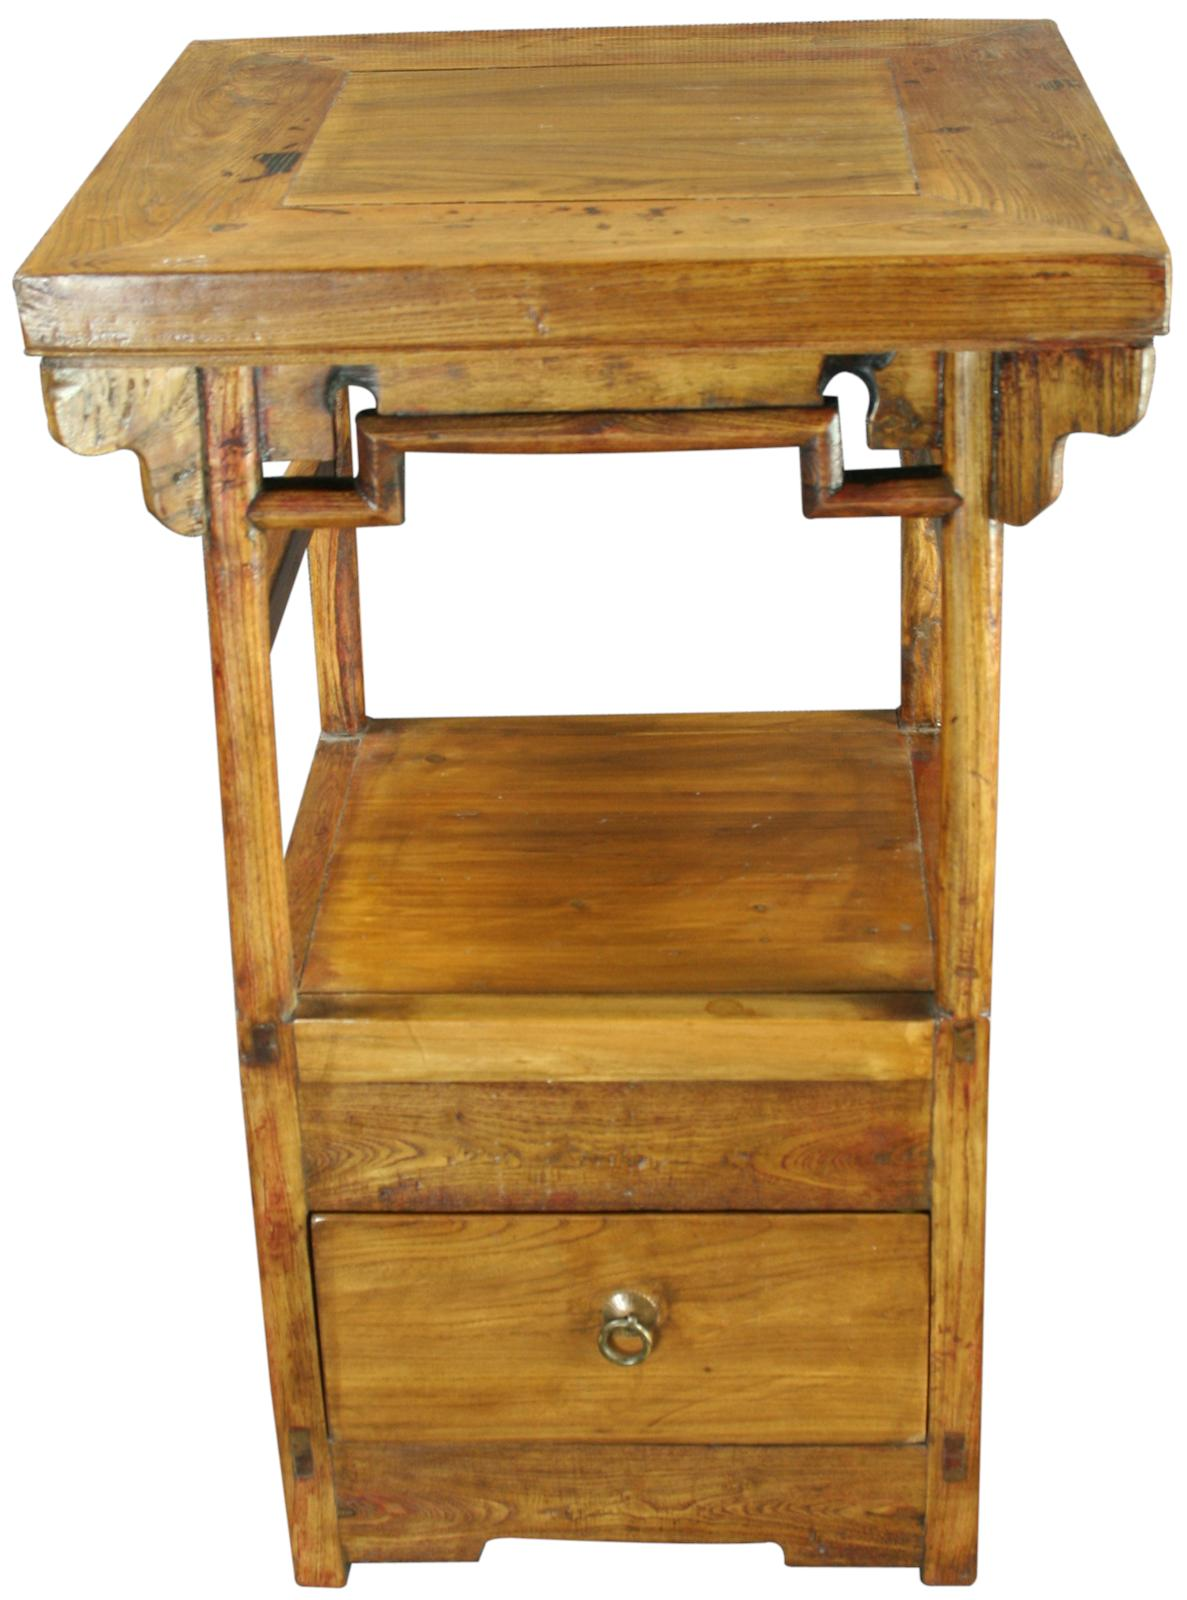 Antique Chinese Accent Table Nightstand Kitchen Stove Ebay